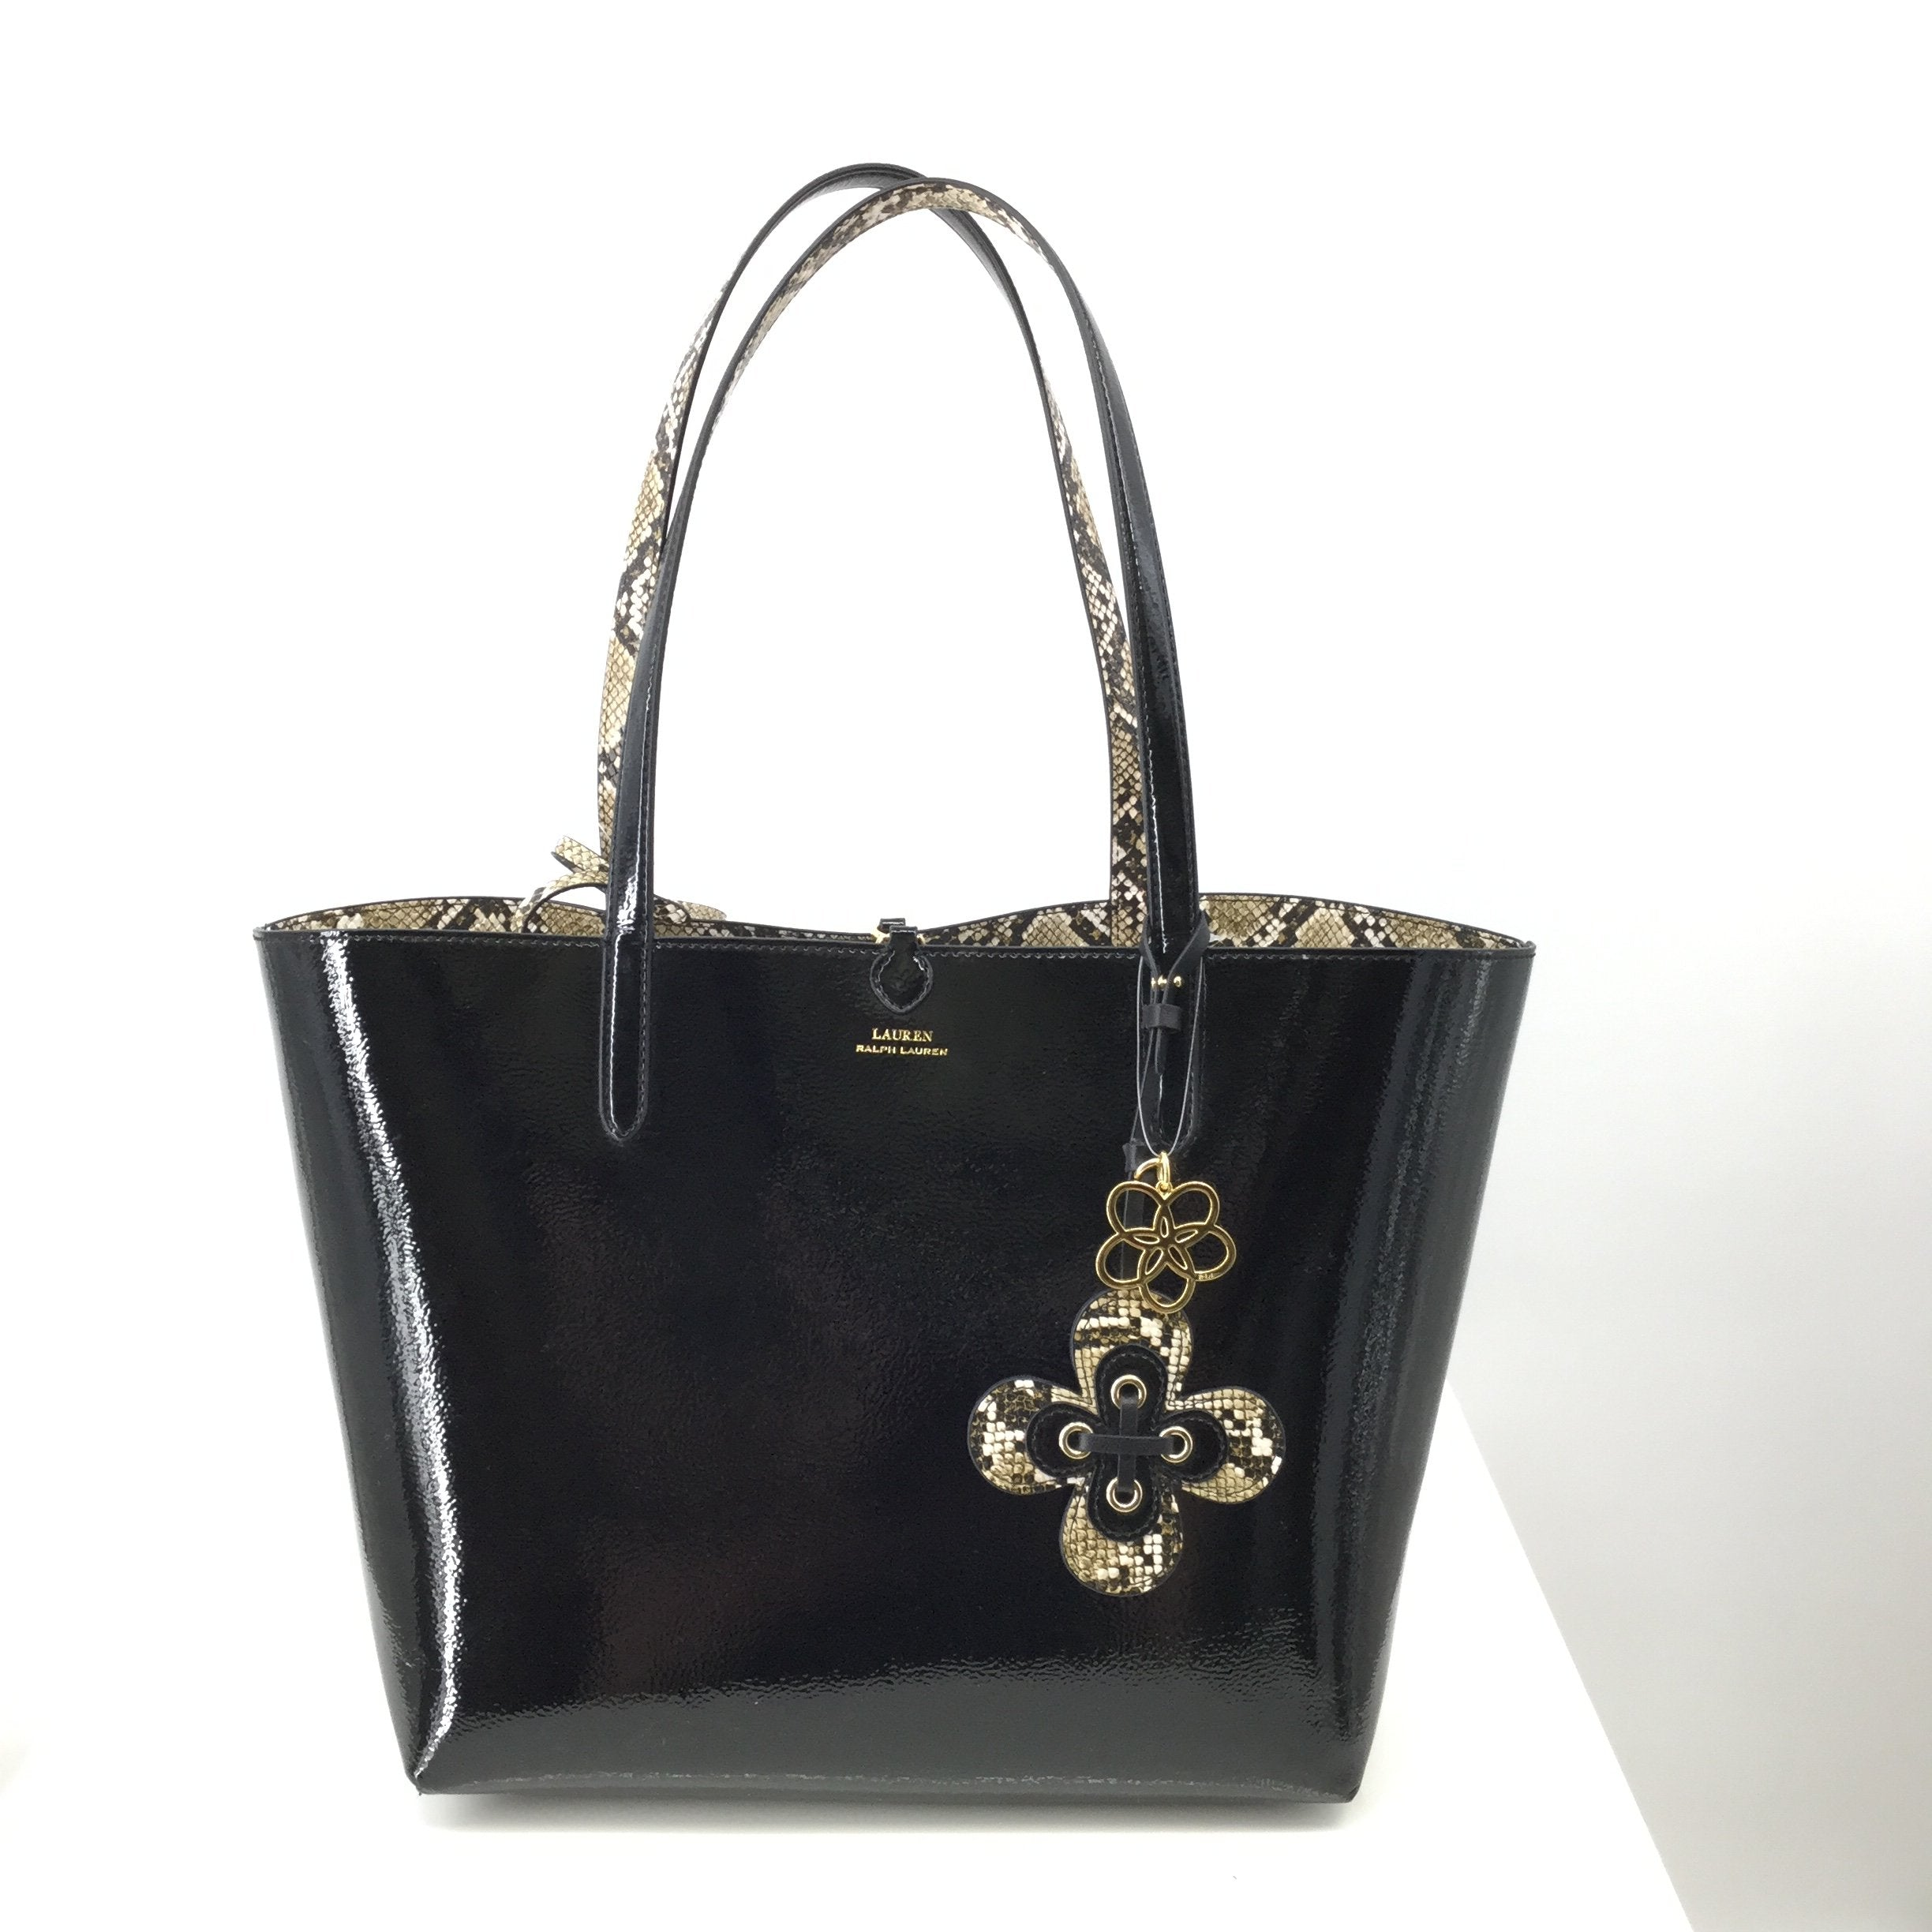 Lauren By Ralph Lauren Handbag Designer Size:medium - <P>BLACK MEDIUM SIZED LAUREN BY RALPH LAUREN TOTE WITH SNAKE PRINT INTERIOR. COMES WITH KEYCHAIN AND MATCHING POUCH.</P>